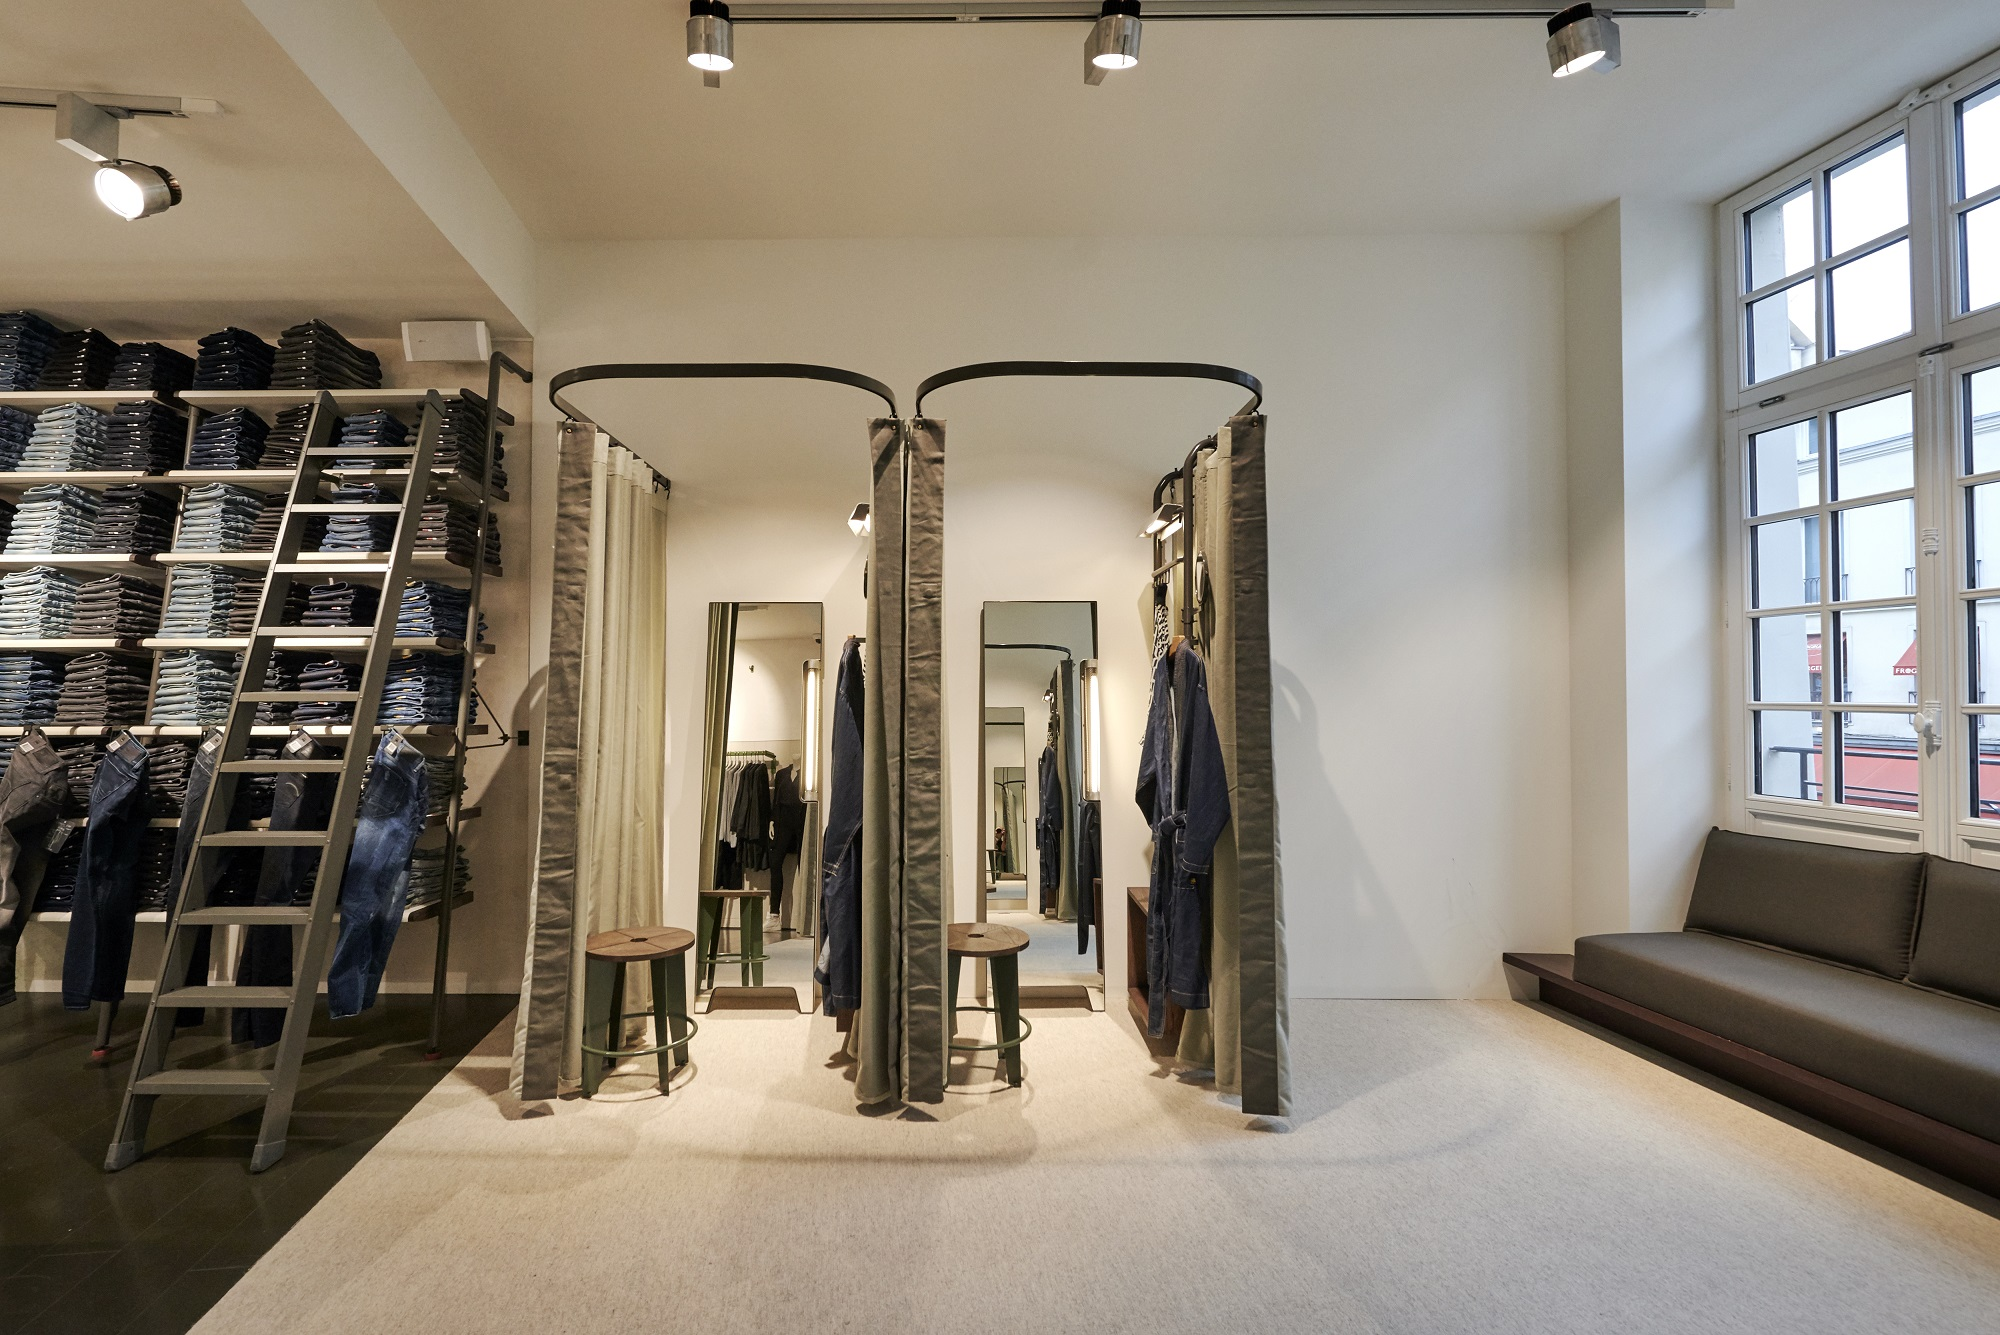 boutique g star paris adresse,g star raw boutique a paris